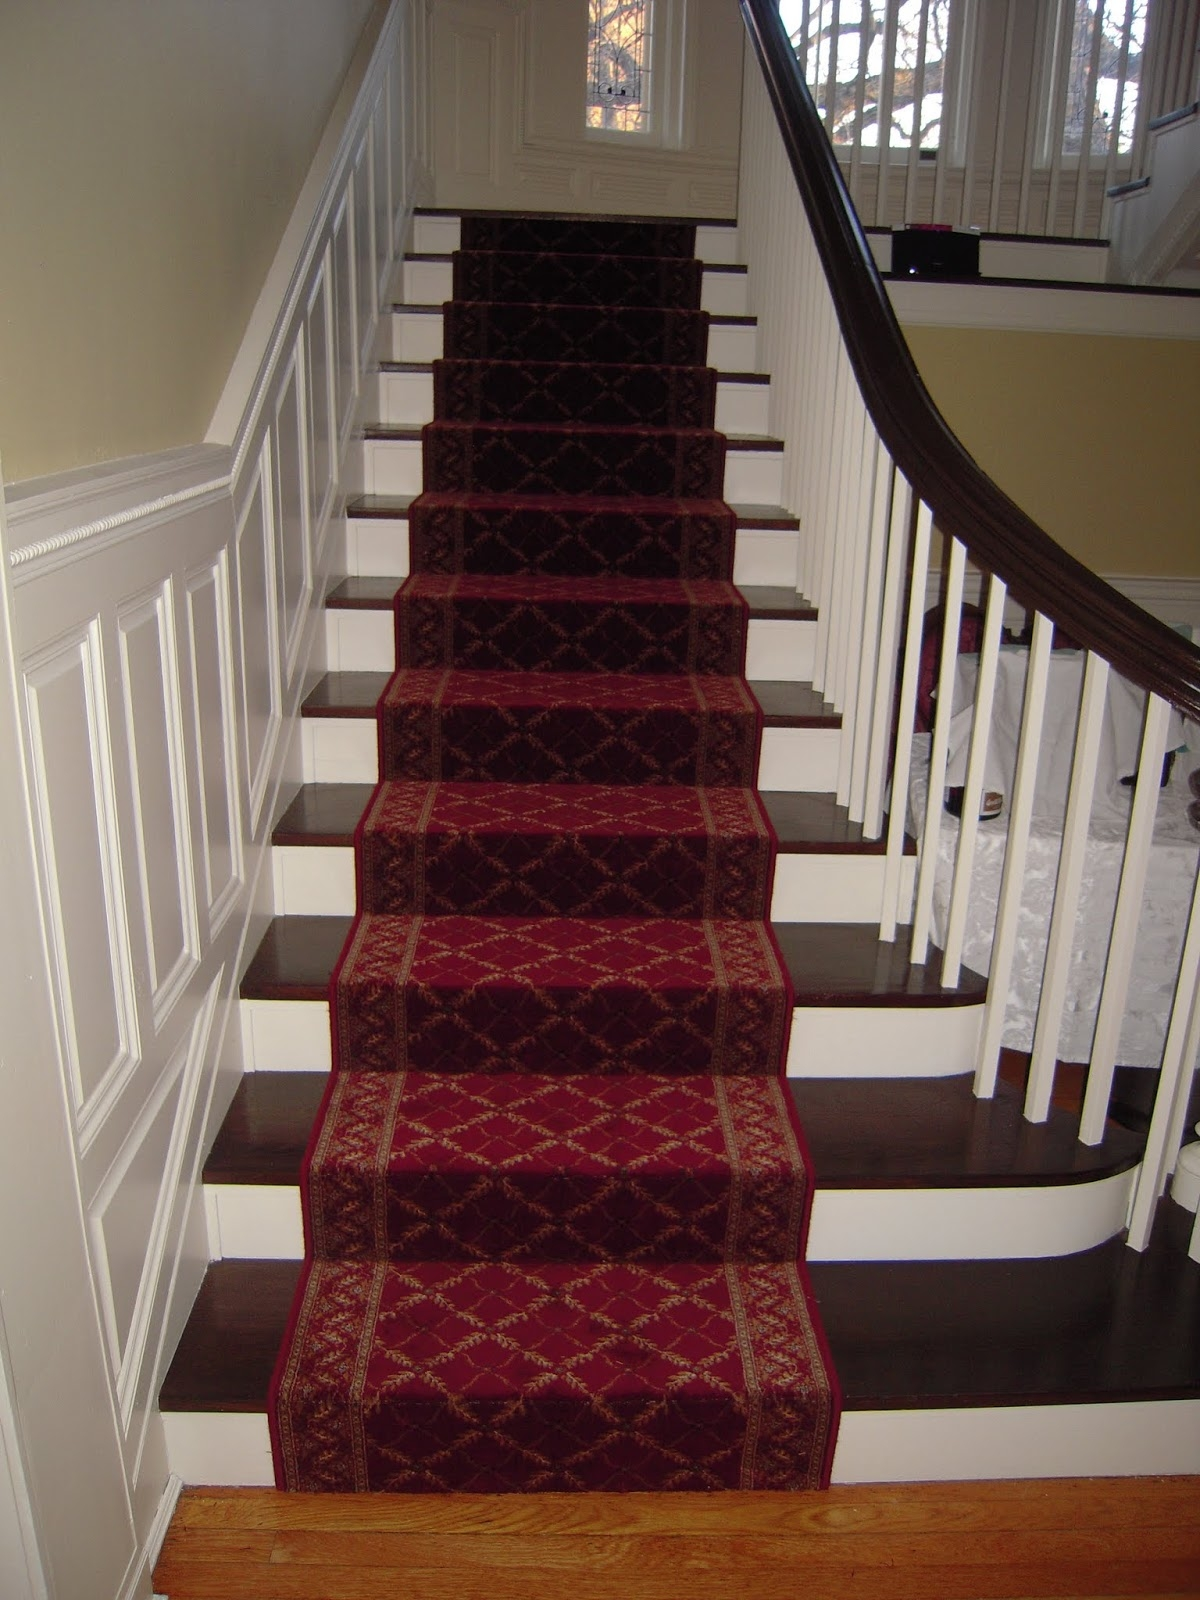 Carpet Runner For Stairs Regarding Rugs For Staircases (#11 of 20)